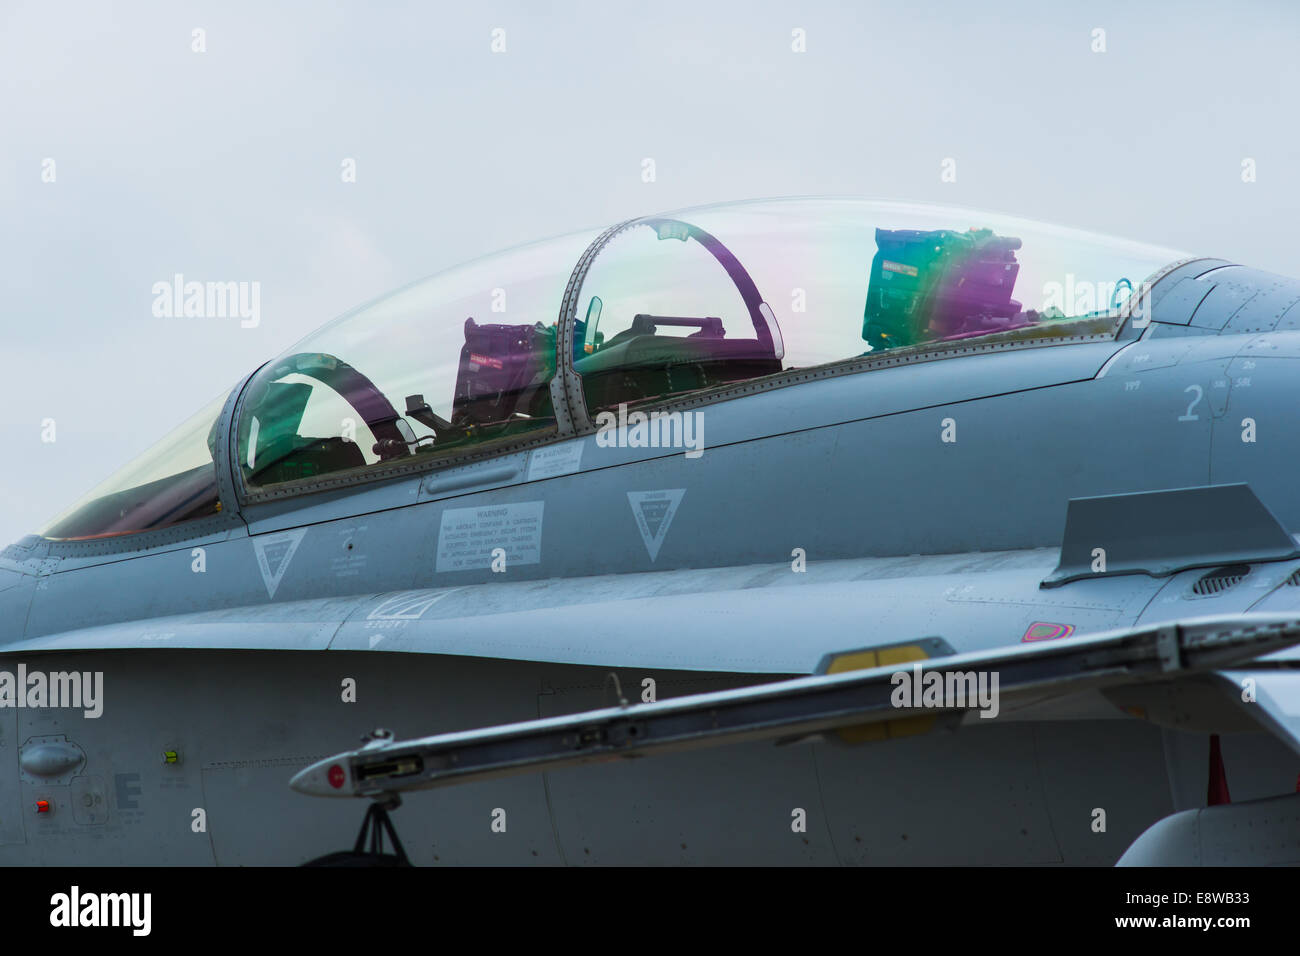 F-18 Canopy. Closeup view of the canopy of F-18 fighter plane at Moscow Aerospace Show 2013 & F-18 Canopy. Closeup view of the canopy of F-18 fighter plane at ...